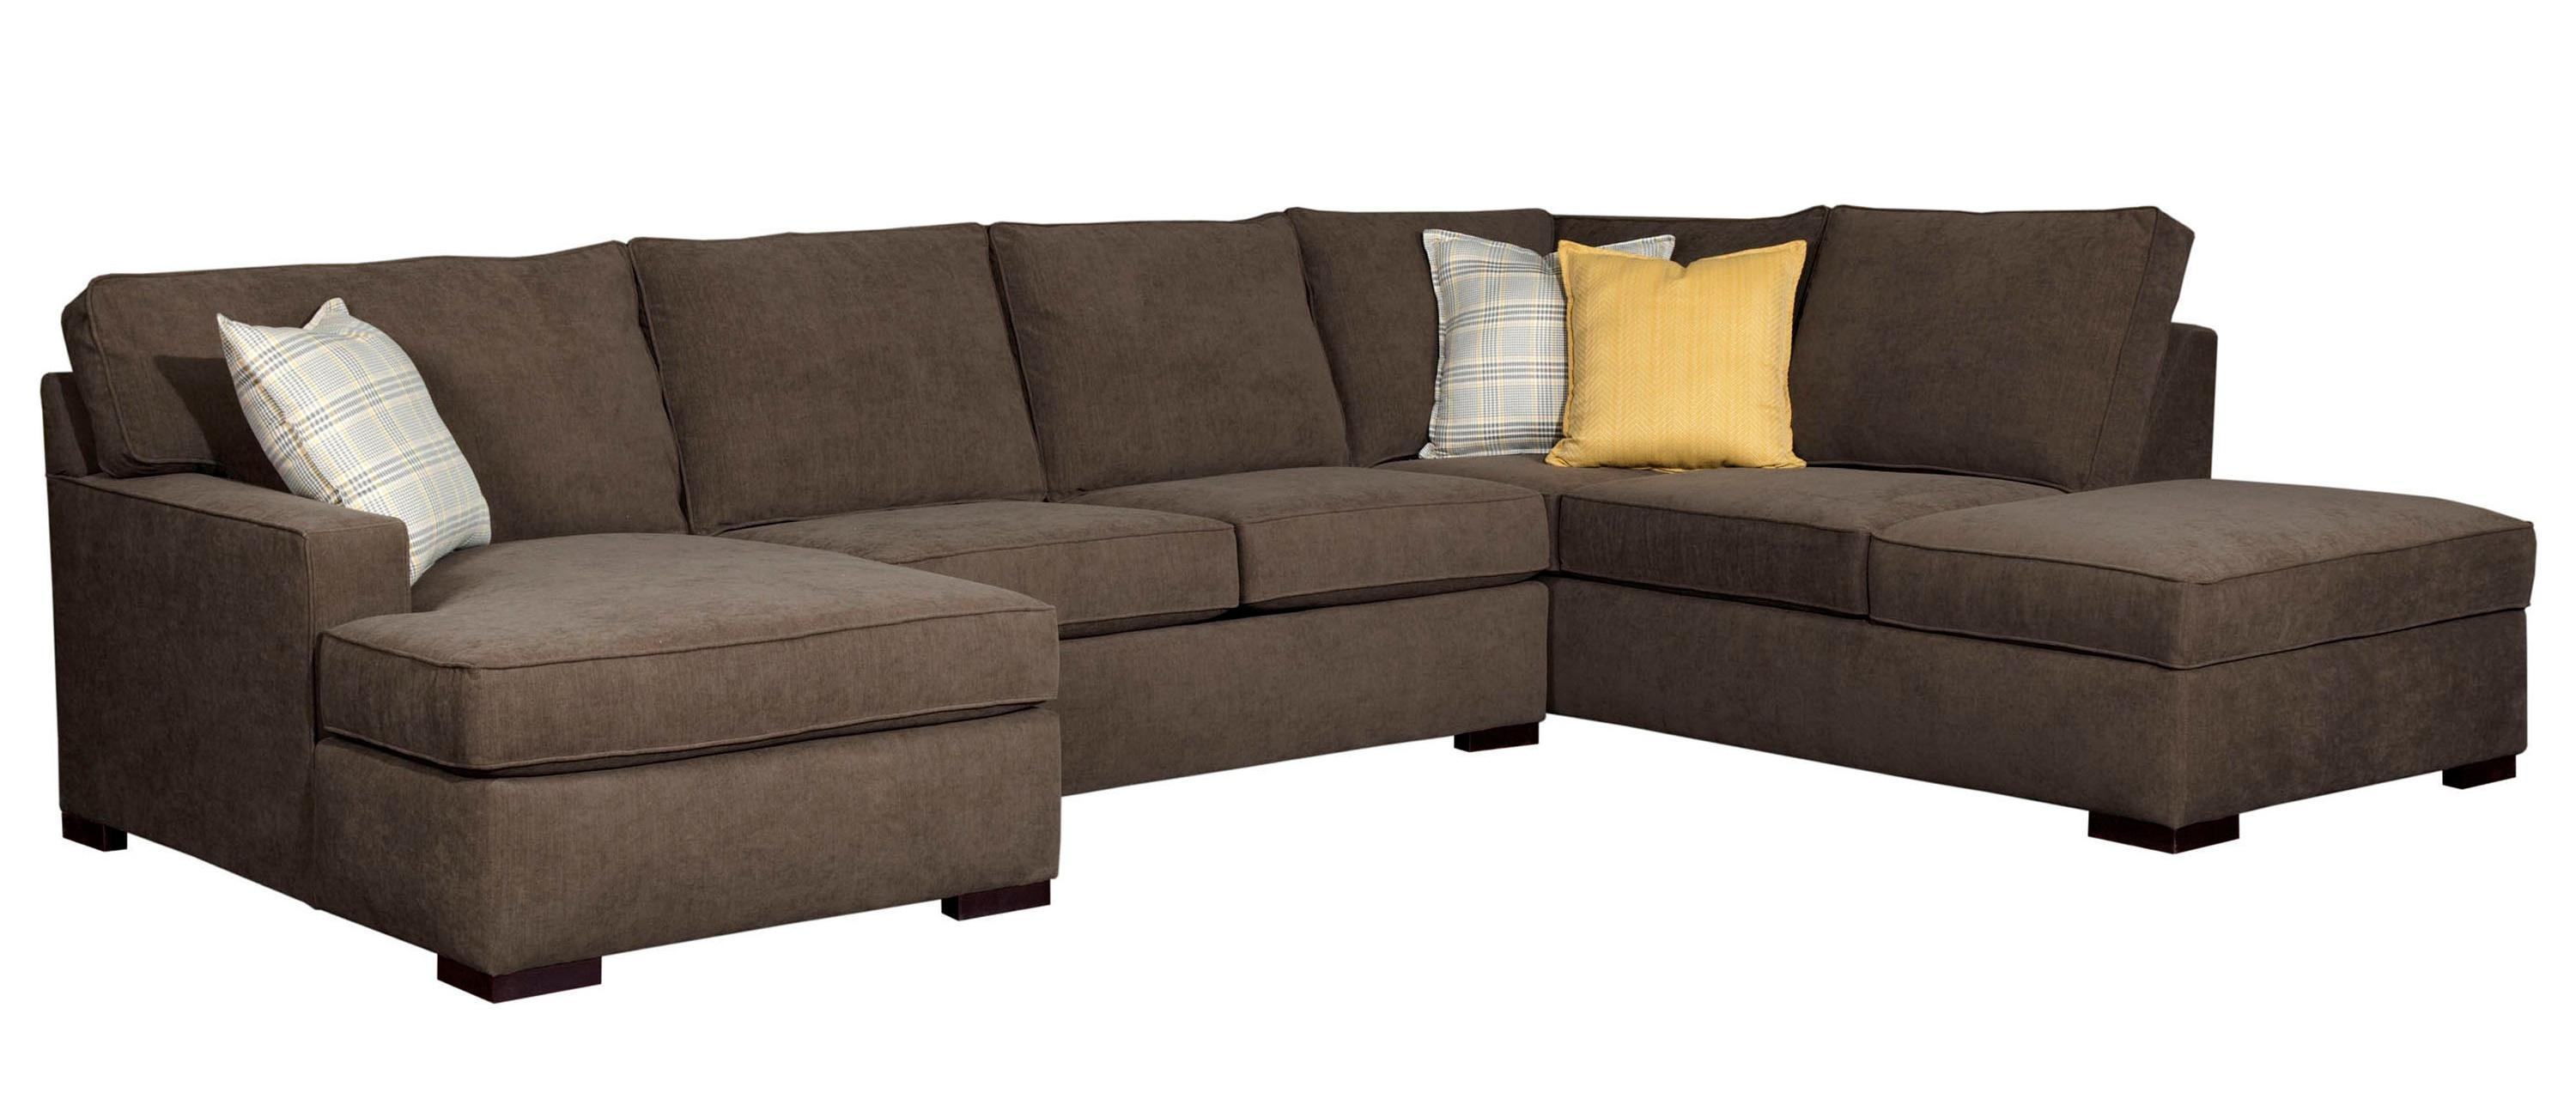 20 best collection of bauhaus furniture sectional sofas for Sofa gallery